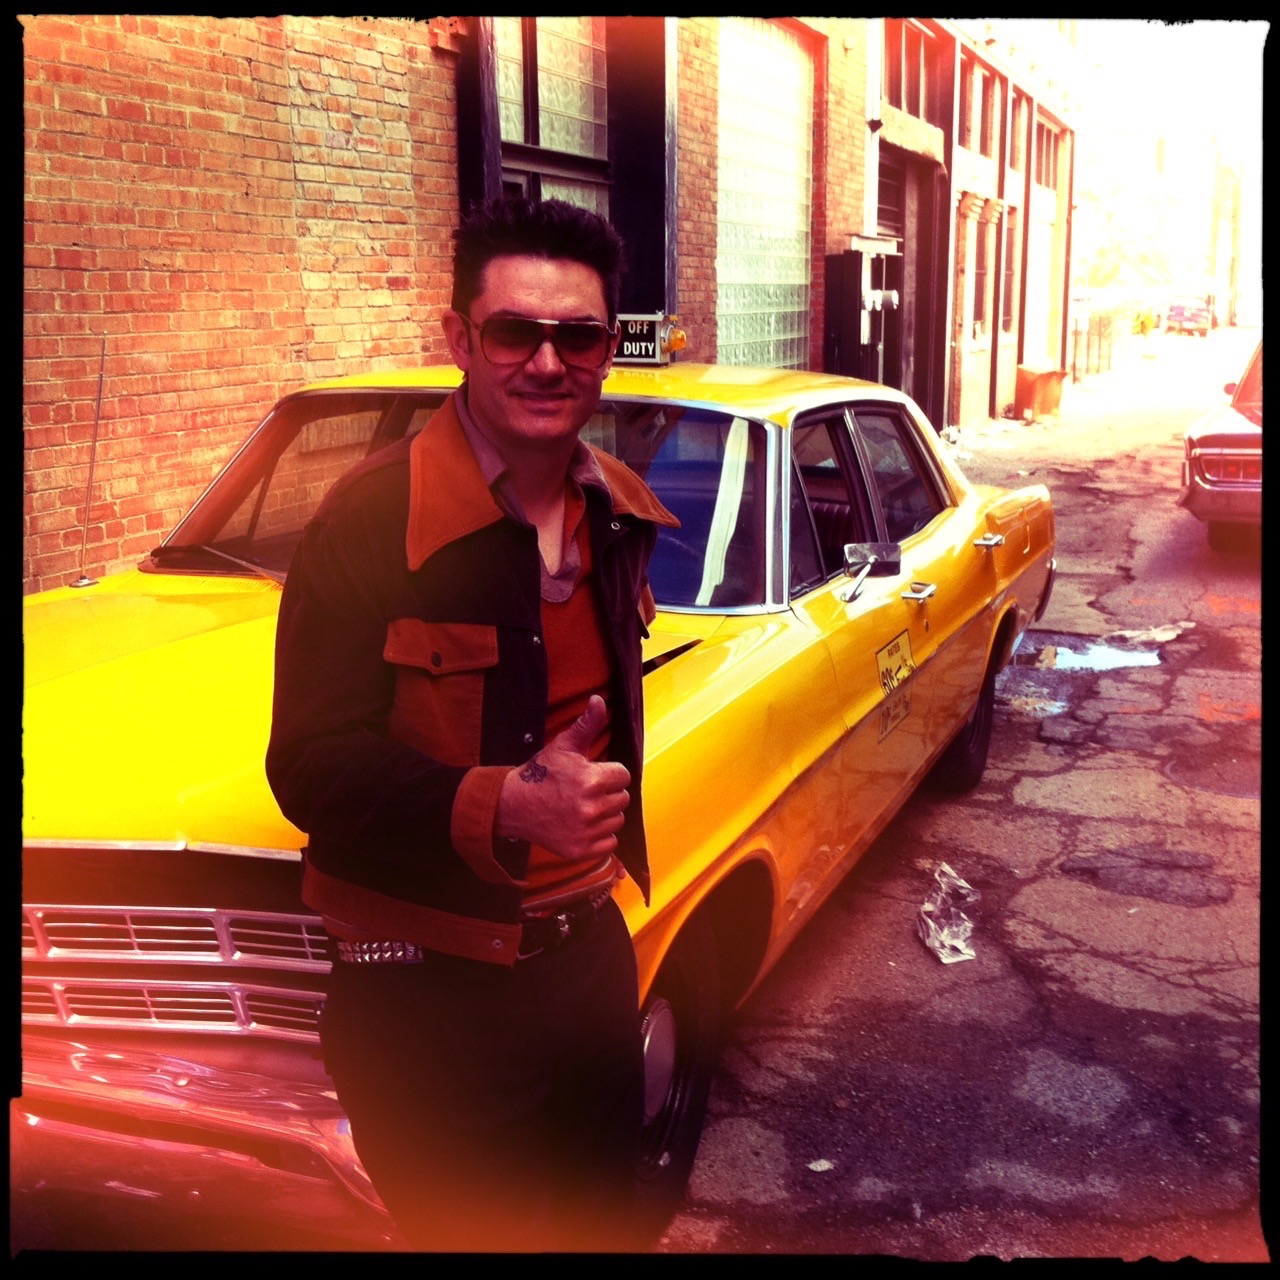 milburn in character on set with taxi